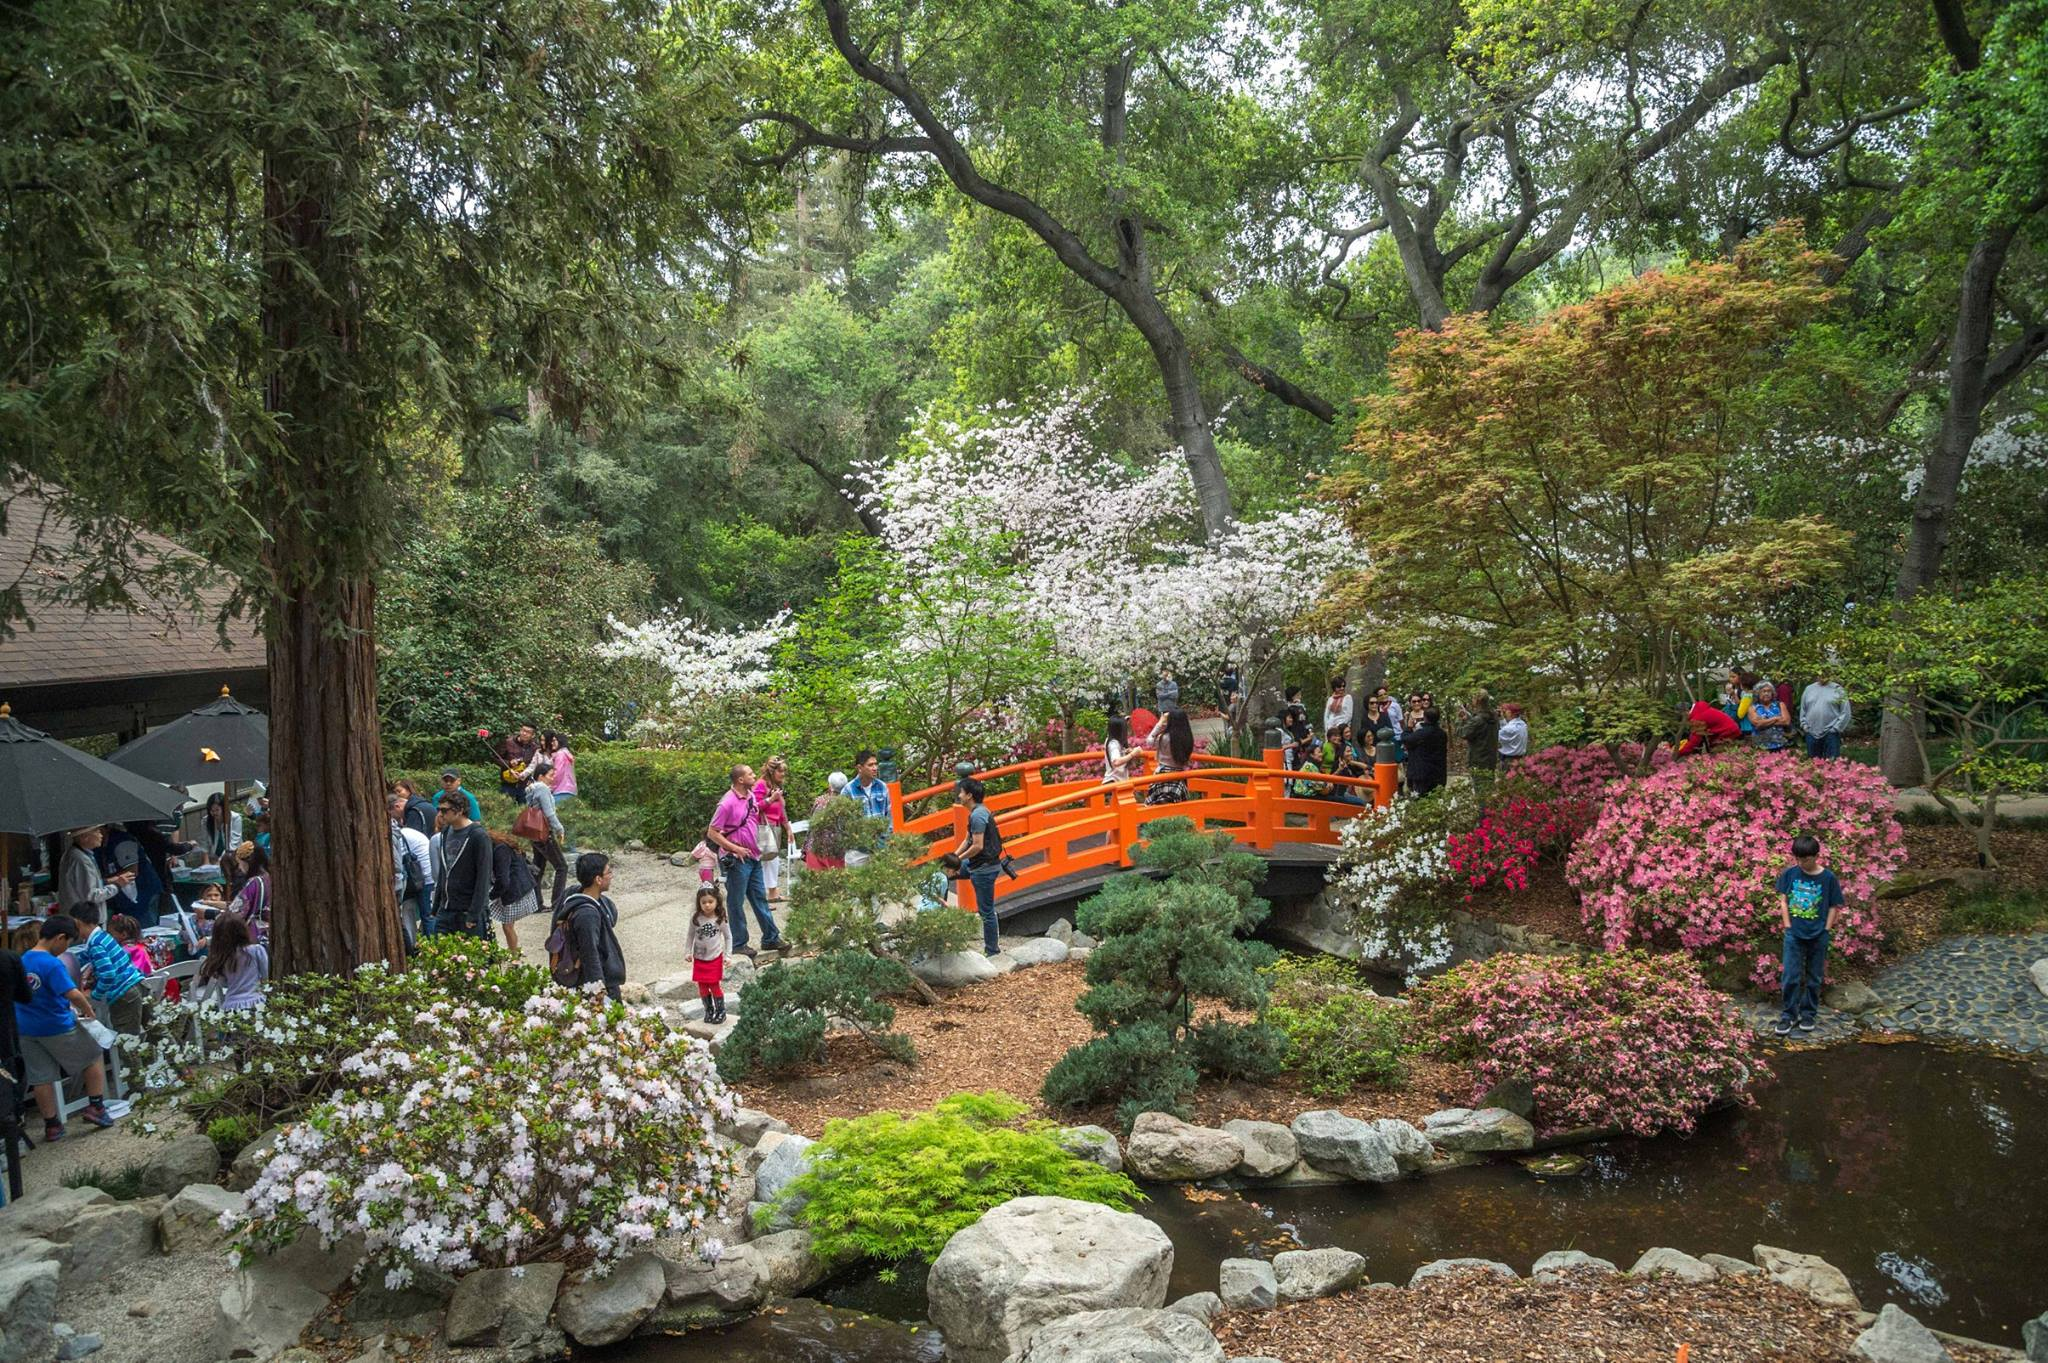 Descanso Gardens Is The Best Place To See Cherry Blossoms In Southern California This Spring